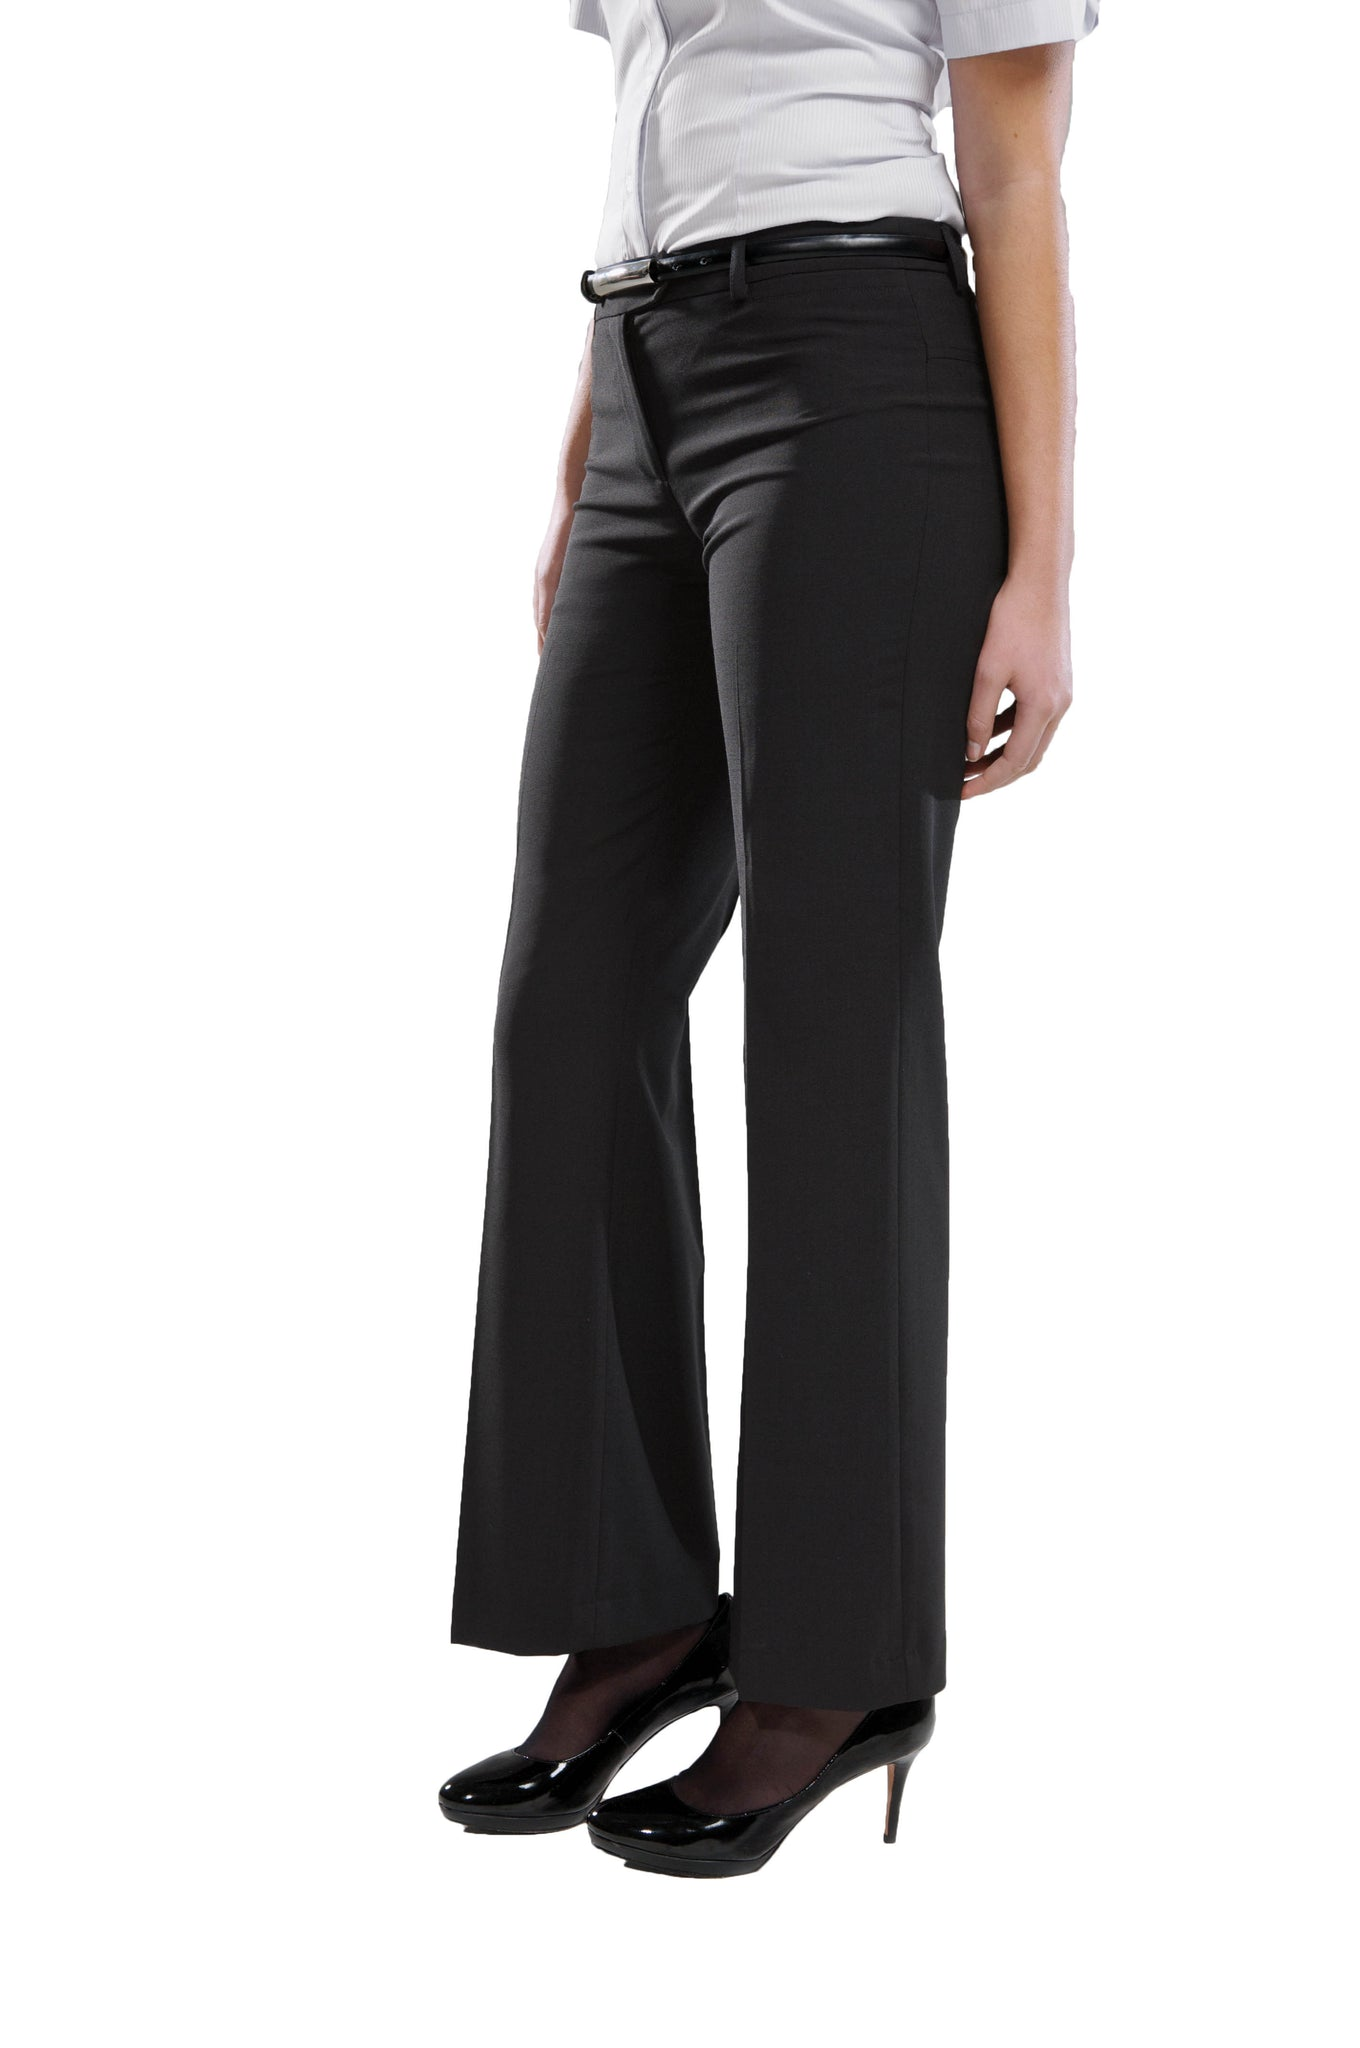 Ladies Contemporary Trouser - Polywool - Black